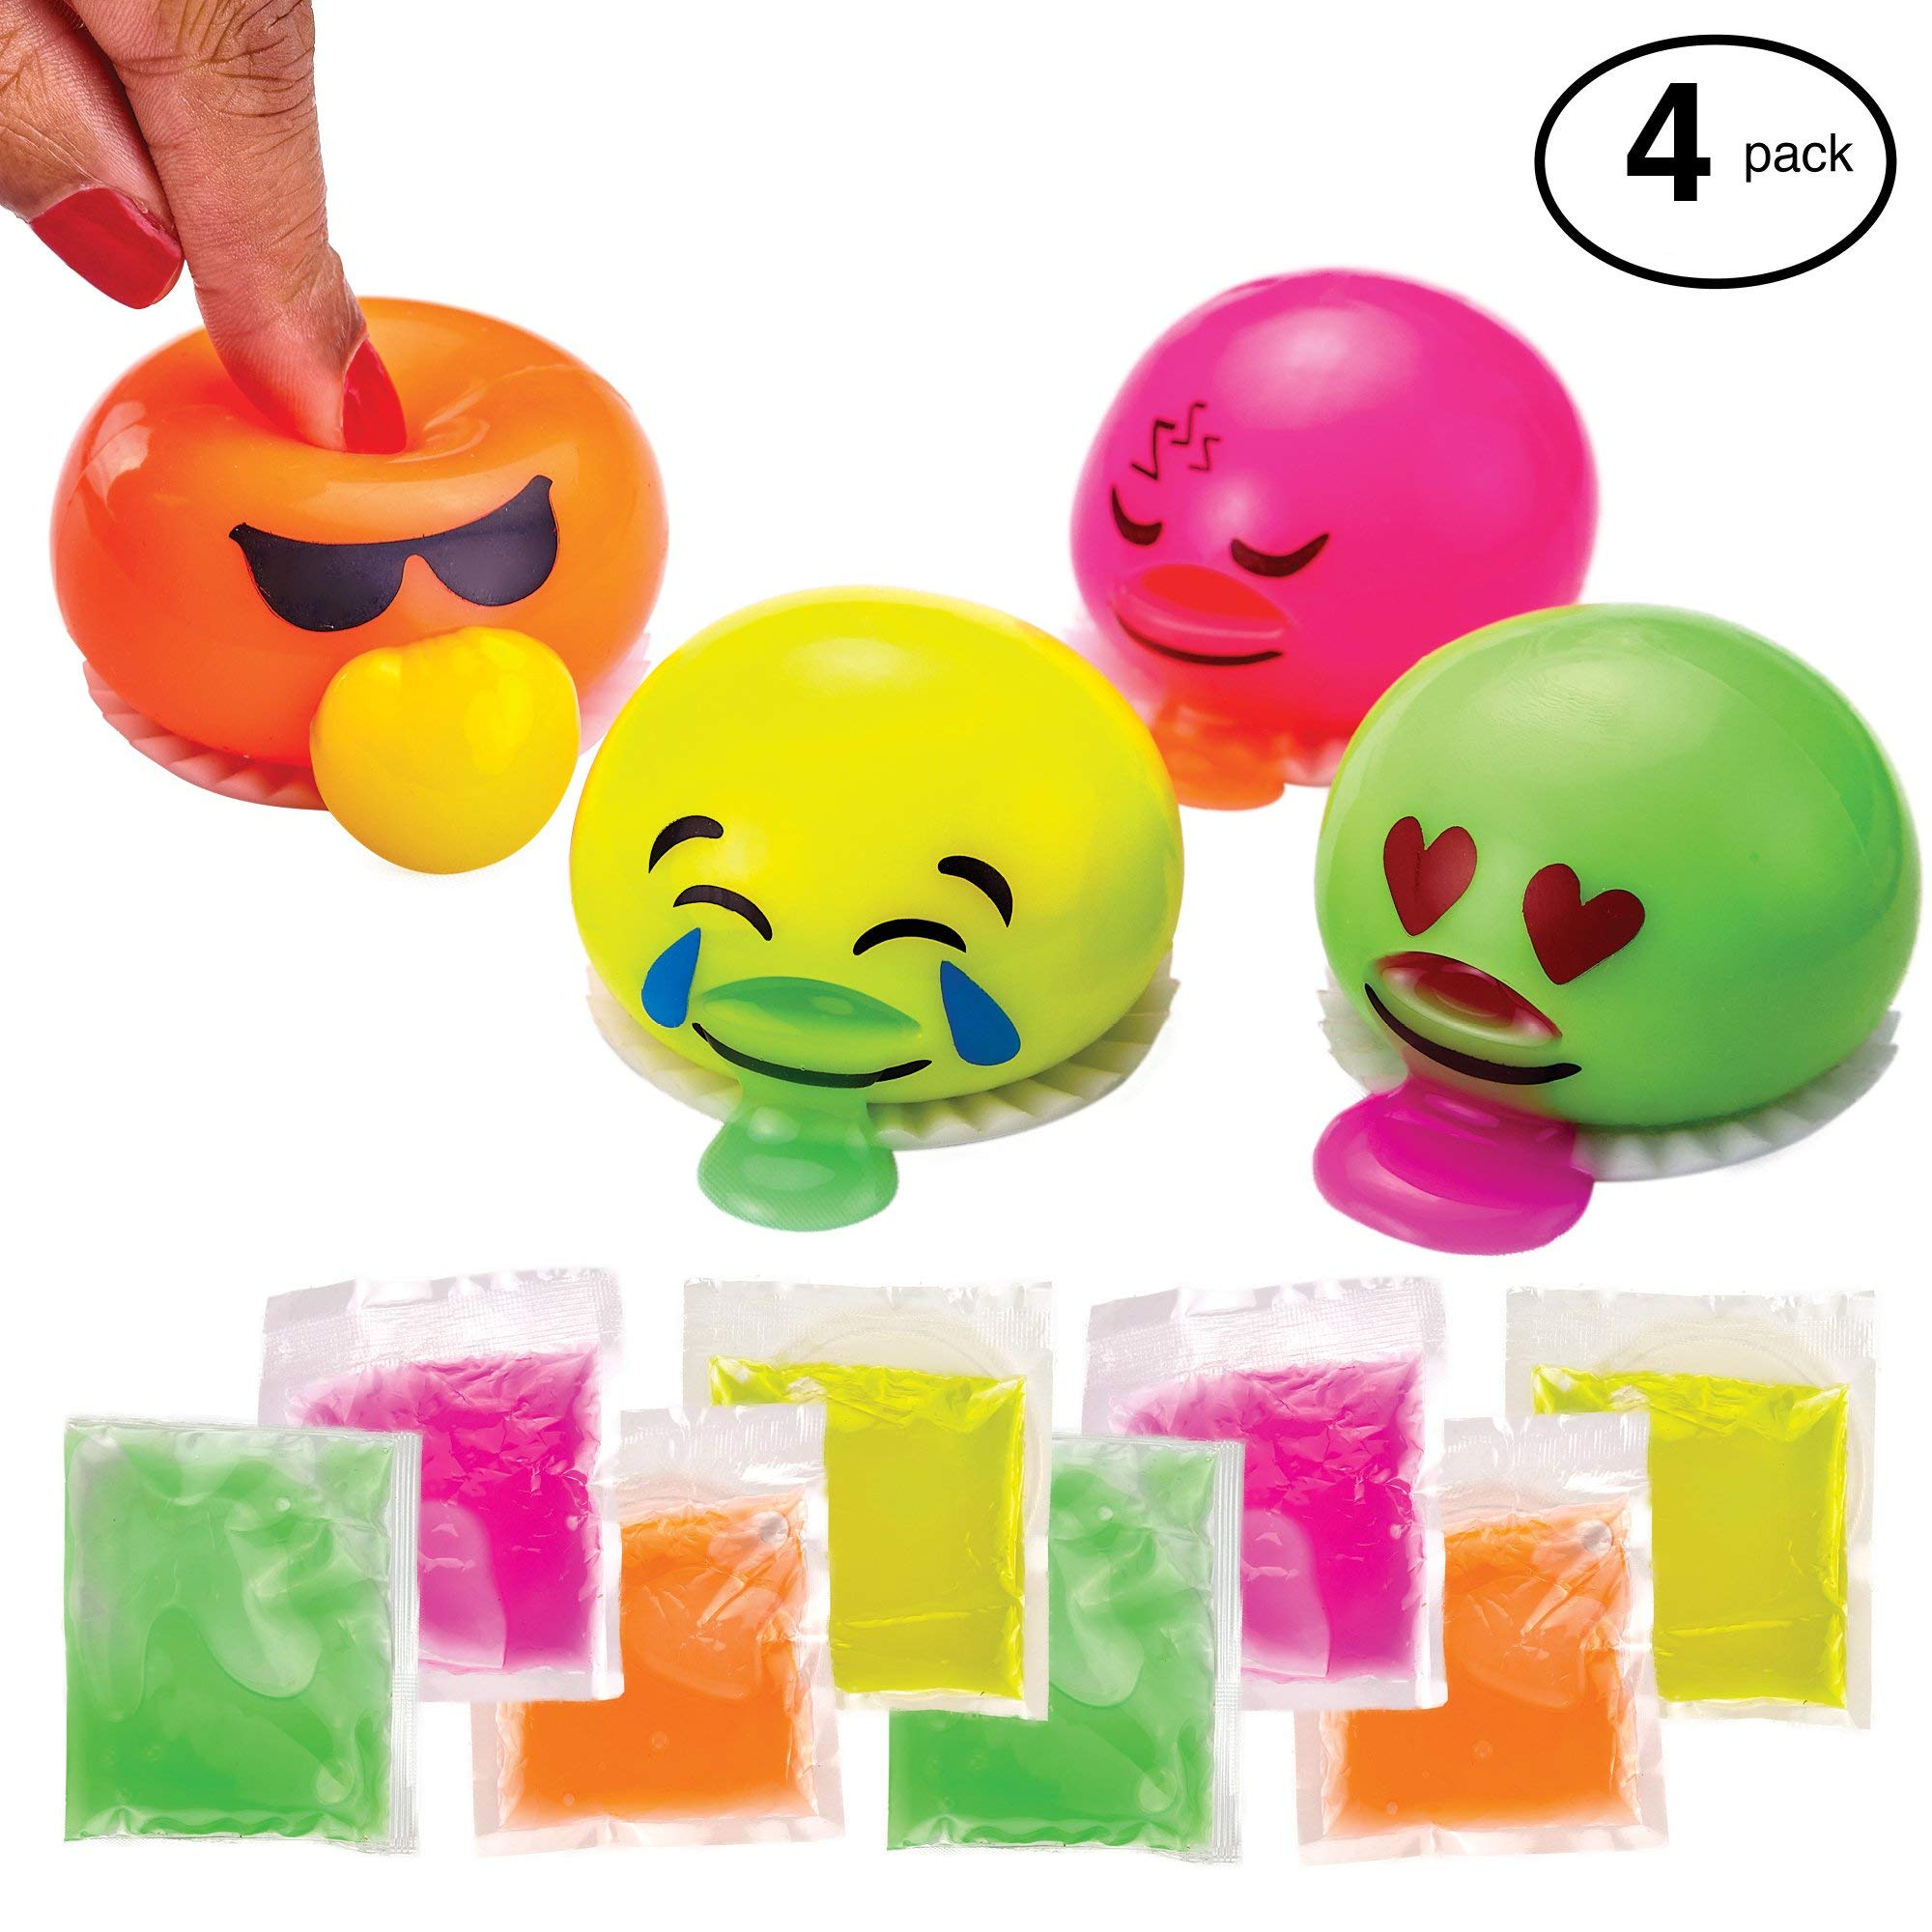 ChefSlime Emoji Slime Spitting Putty Squeezer | Soft & Squishy Stress Relief Party Favor | Trick Toy - Pack of 4 Emoji Slimes for Kids and Adults